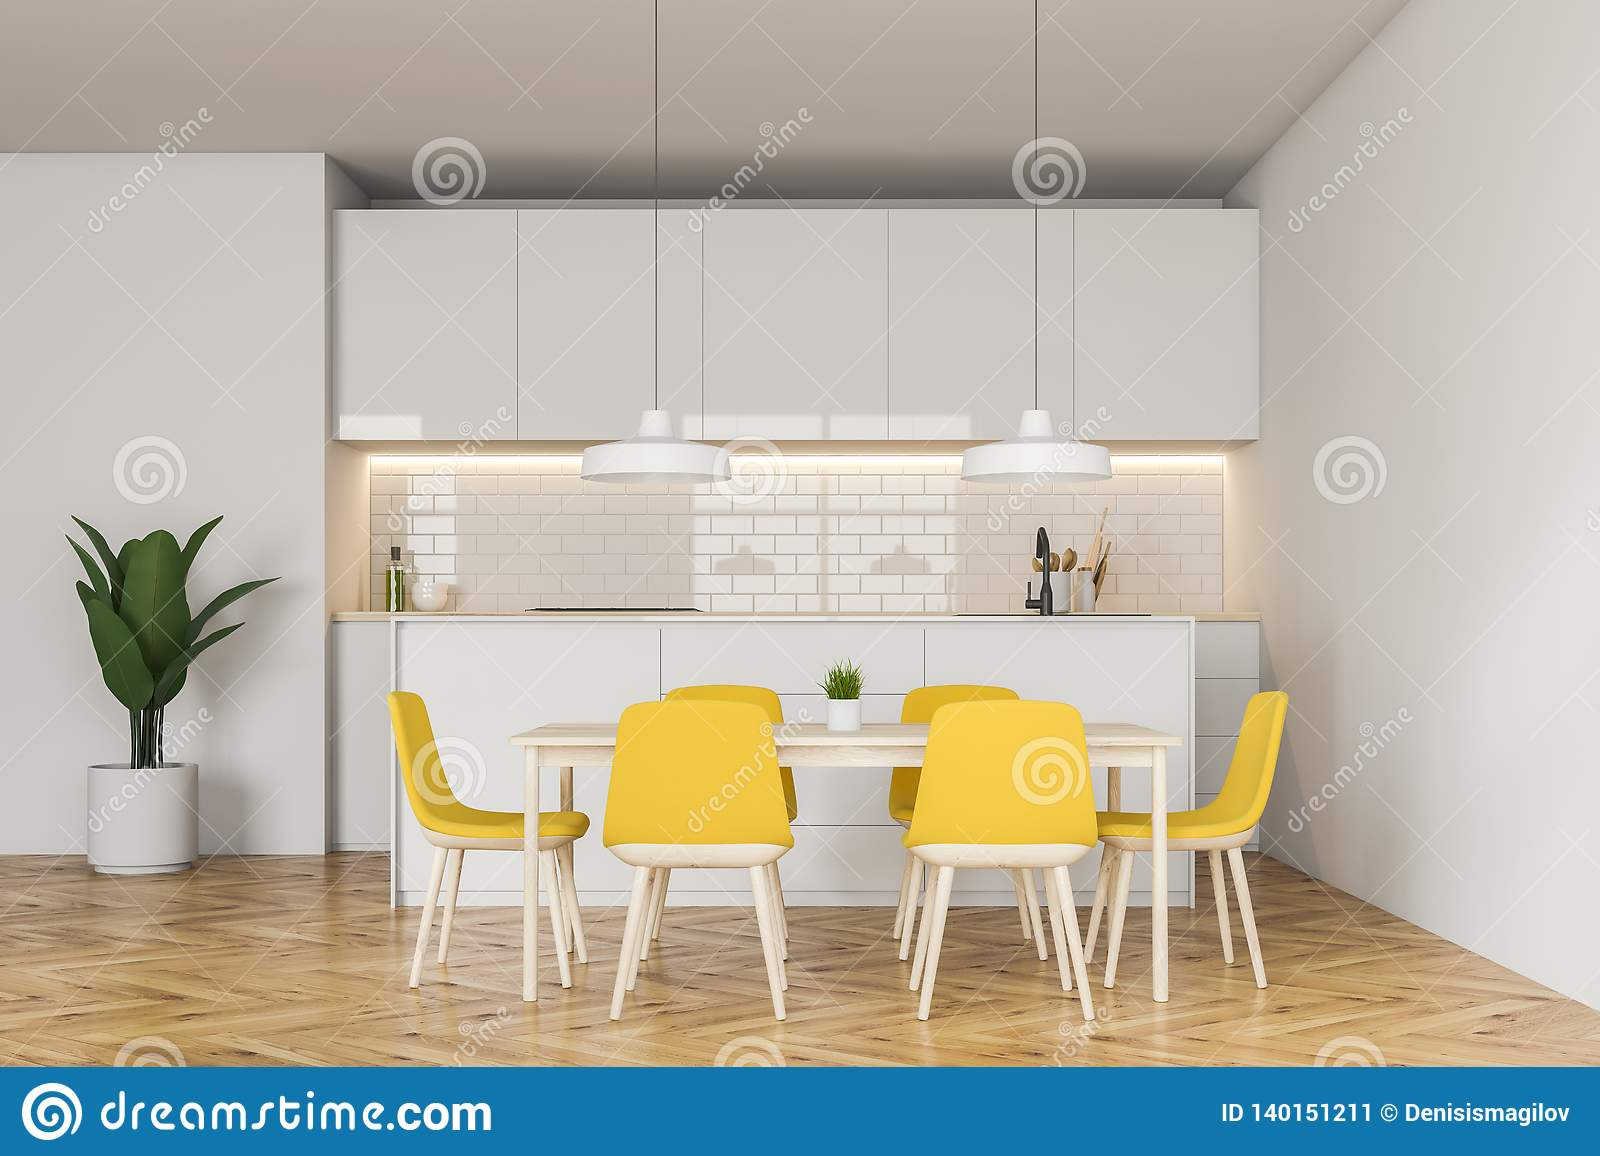 White Kitchen With Yellow Chairs And Bar Stock Illustration